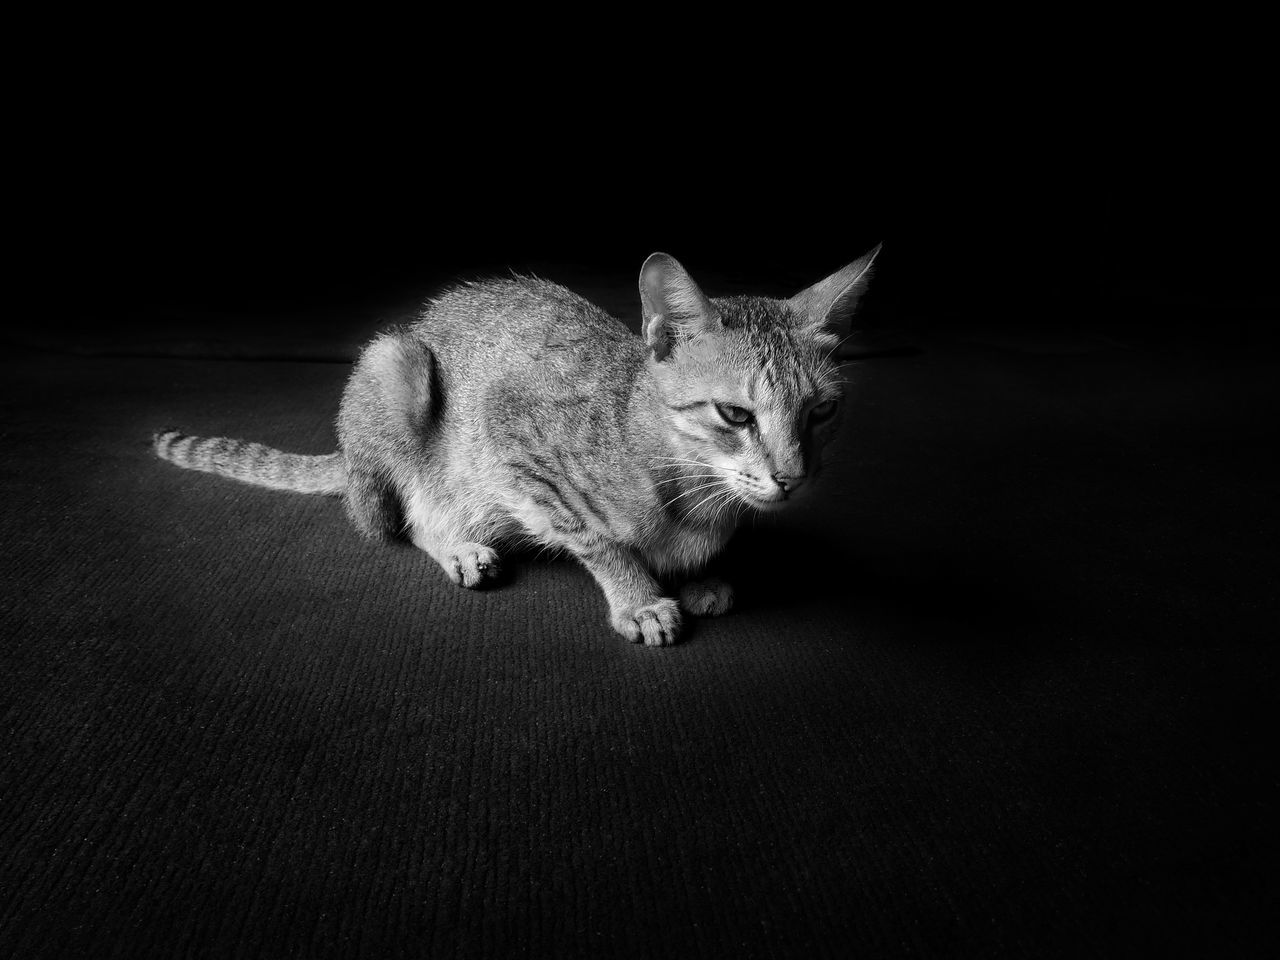 one animal, pets, domestic cat, animal themes, mammal, domestic animals, full length, looking at camera, feline, no people, sitting, portrait, indoors, day